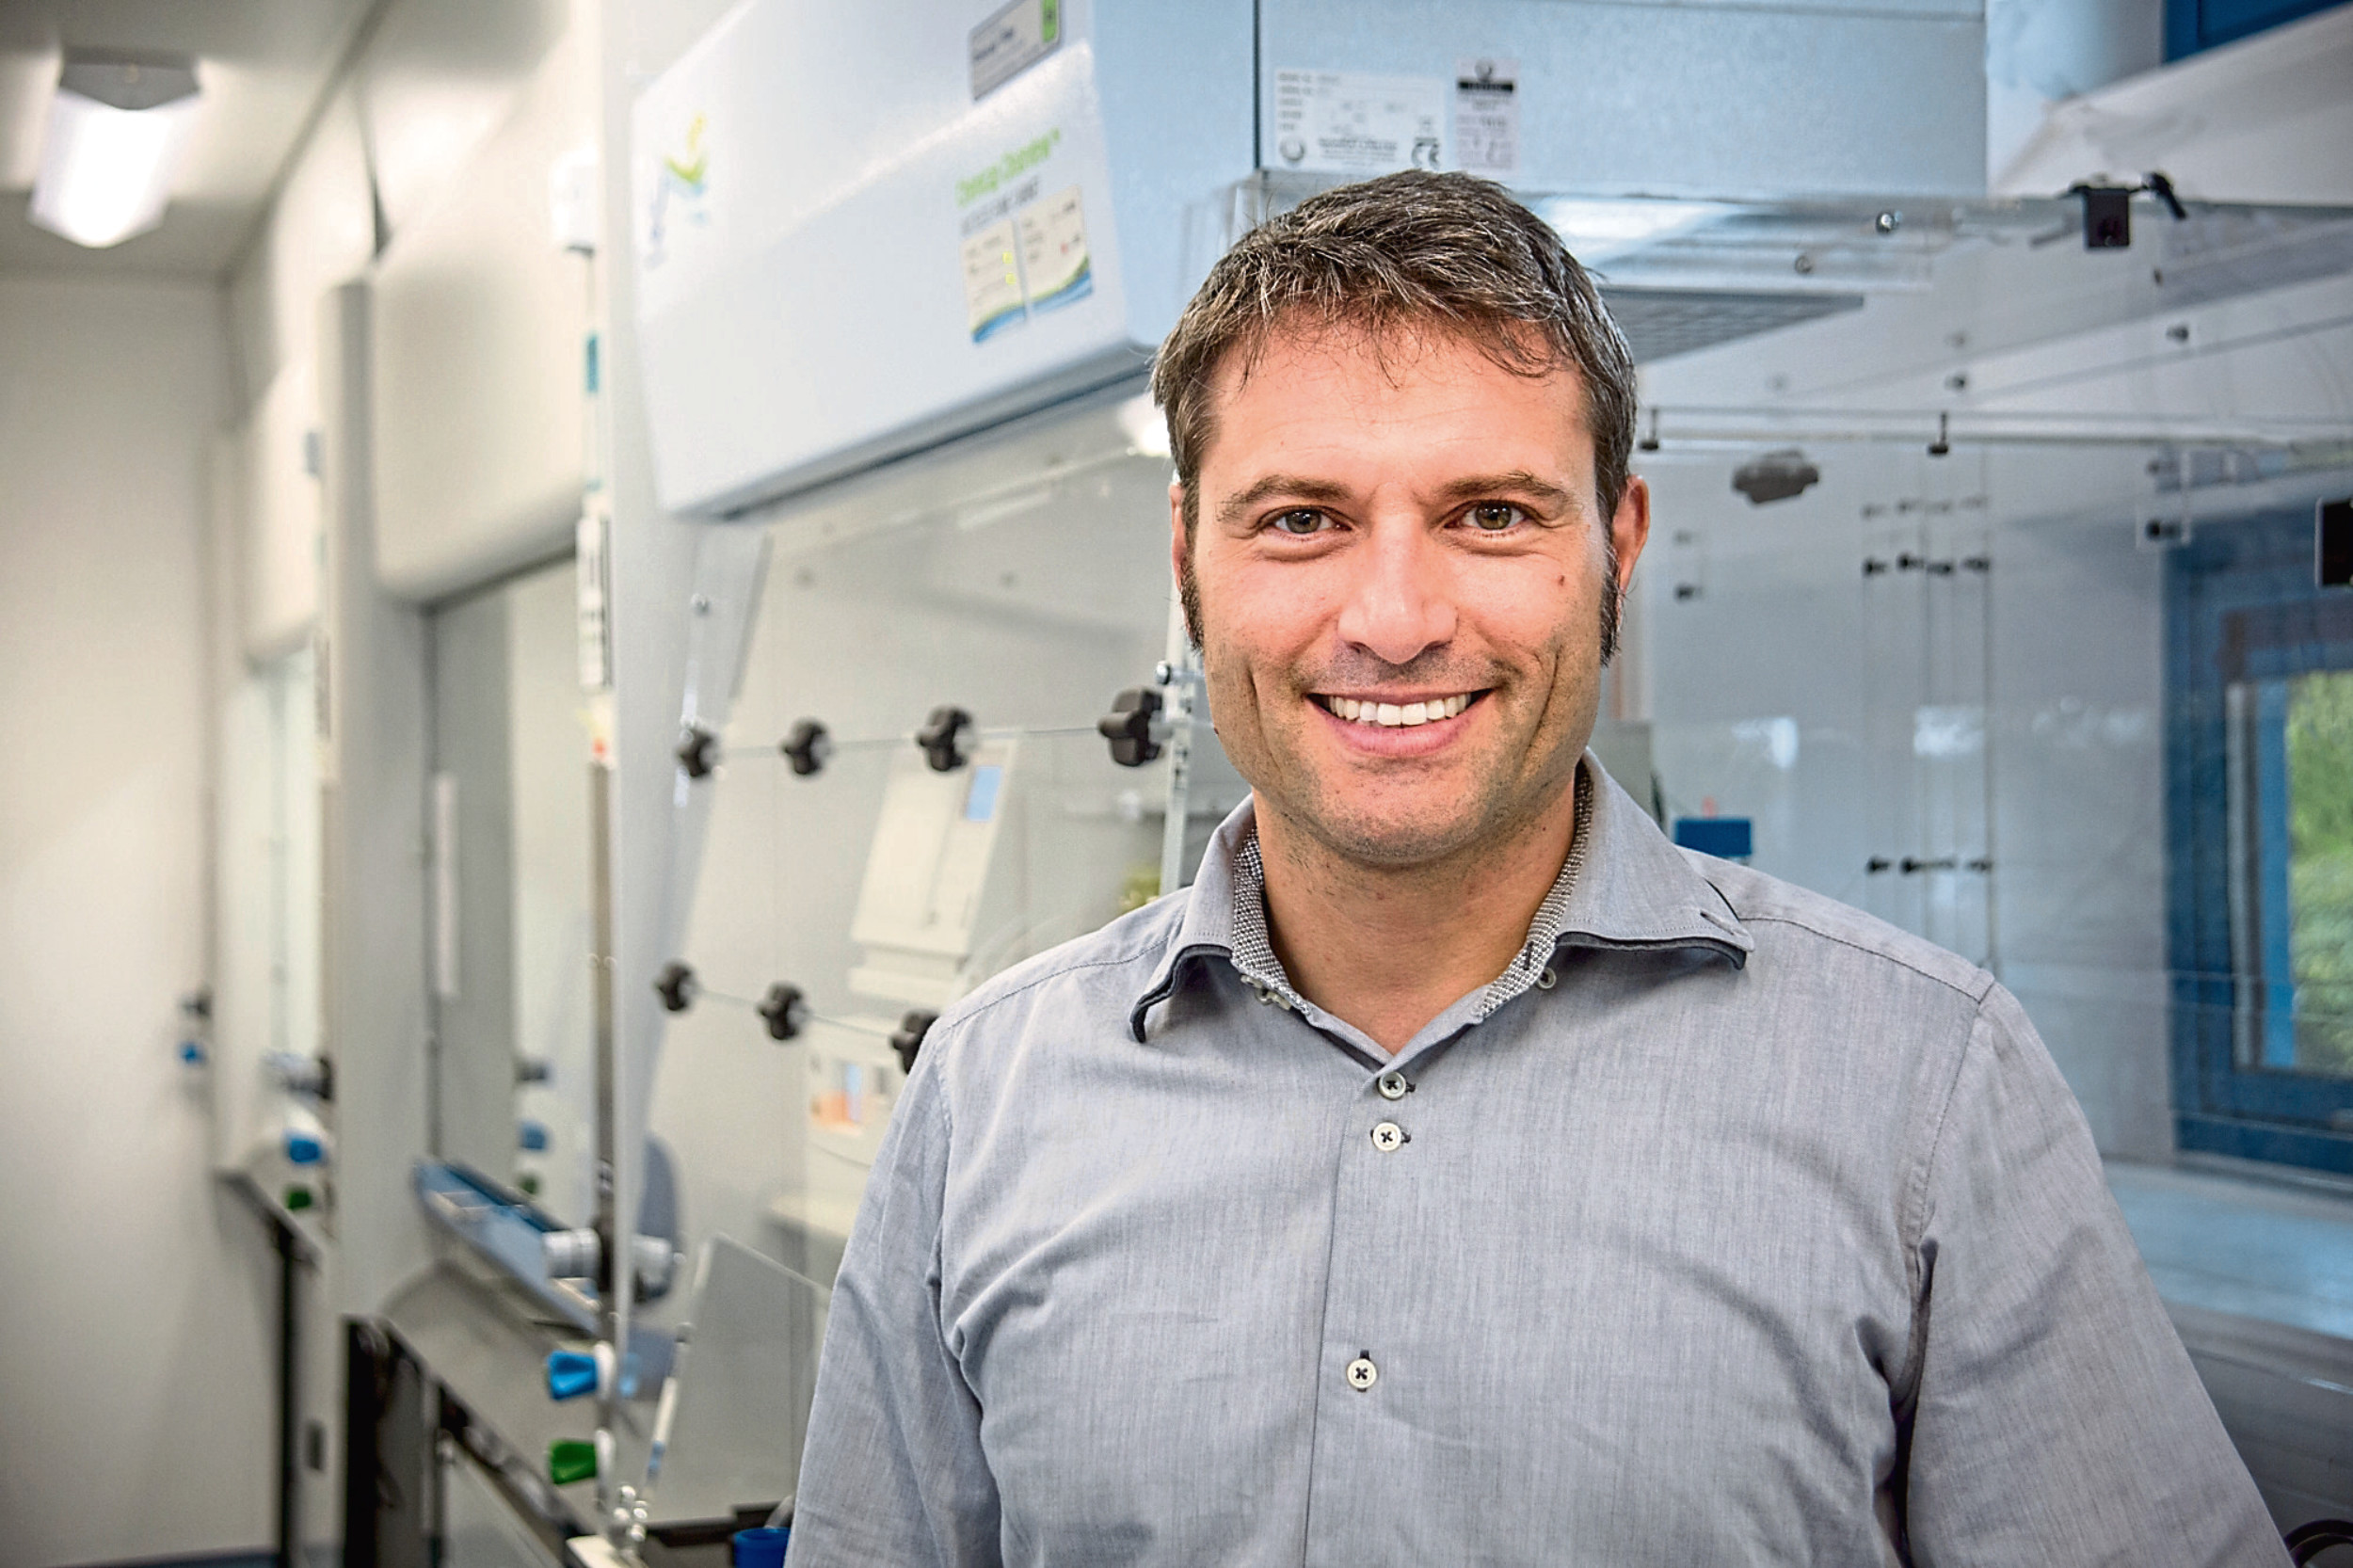 Amphista Therapeutics scientific founder, Professor Alessio Ciulli, who is based at the University of Dundee